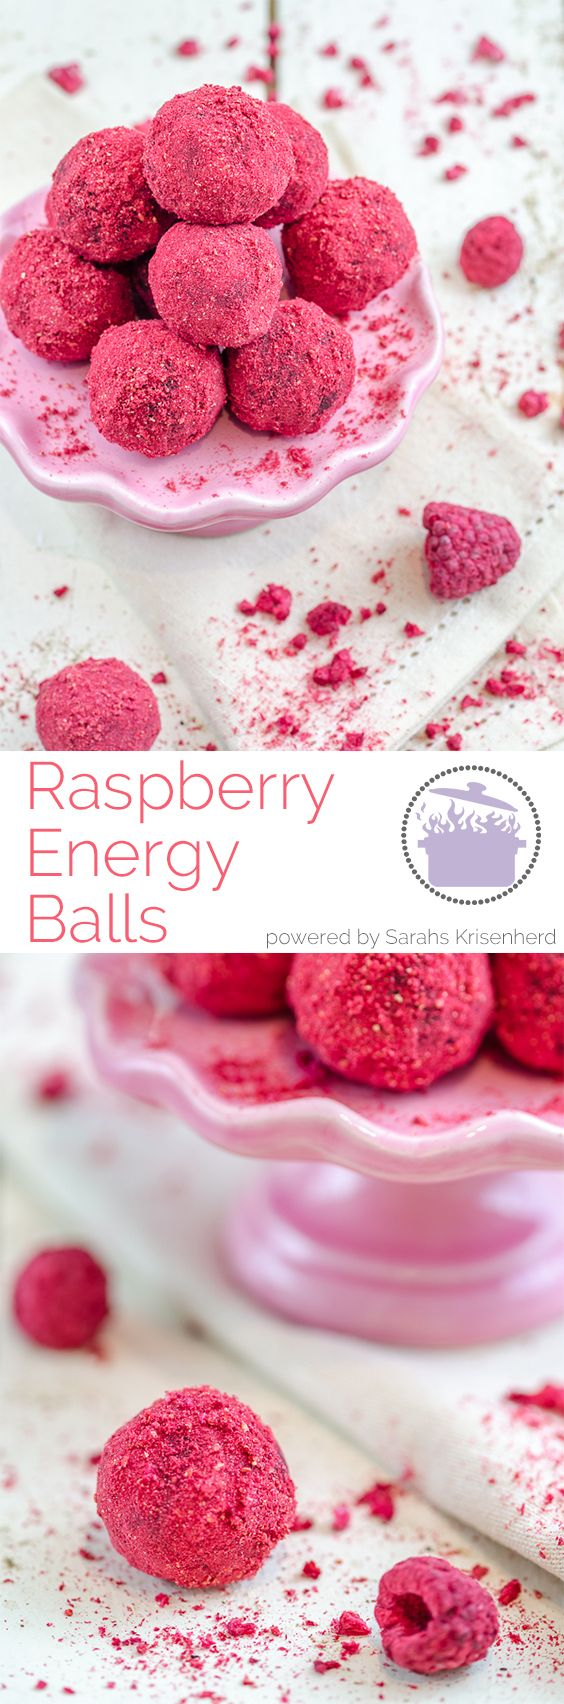 Raspberry Energy Balls - super easy and healthy!